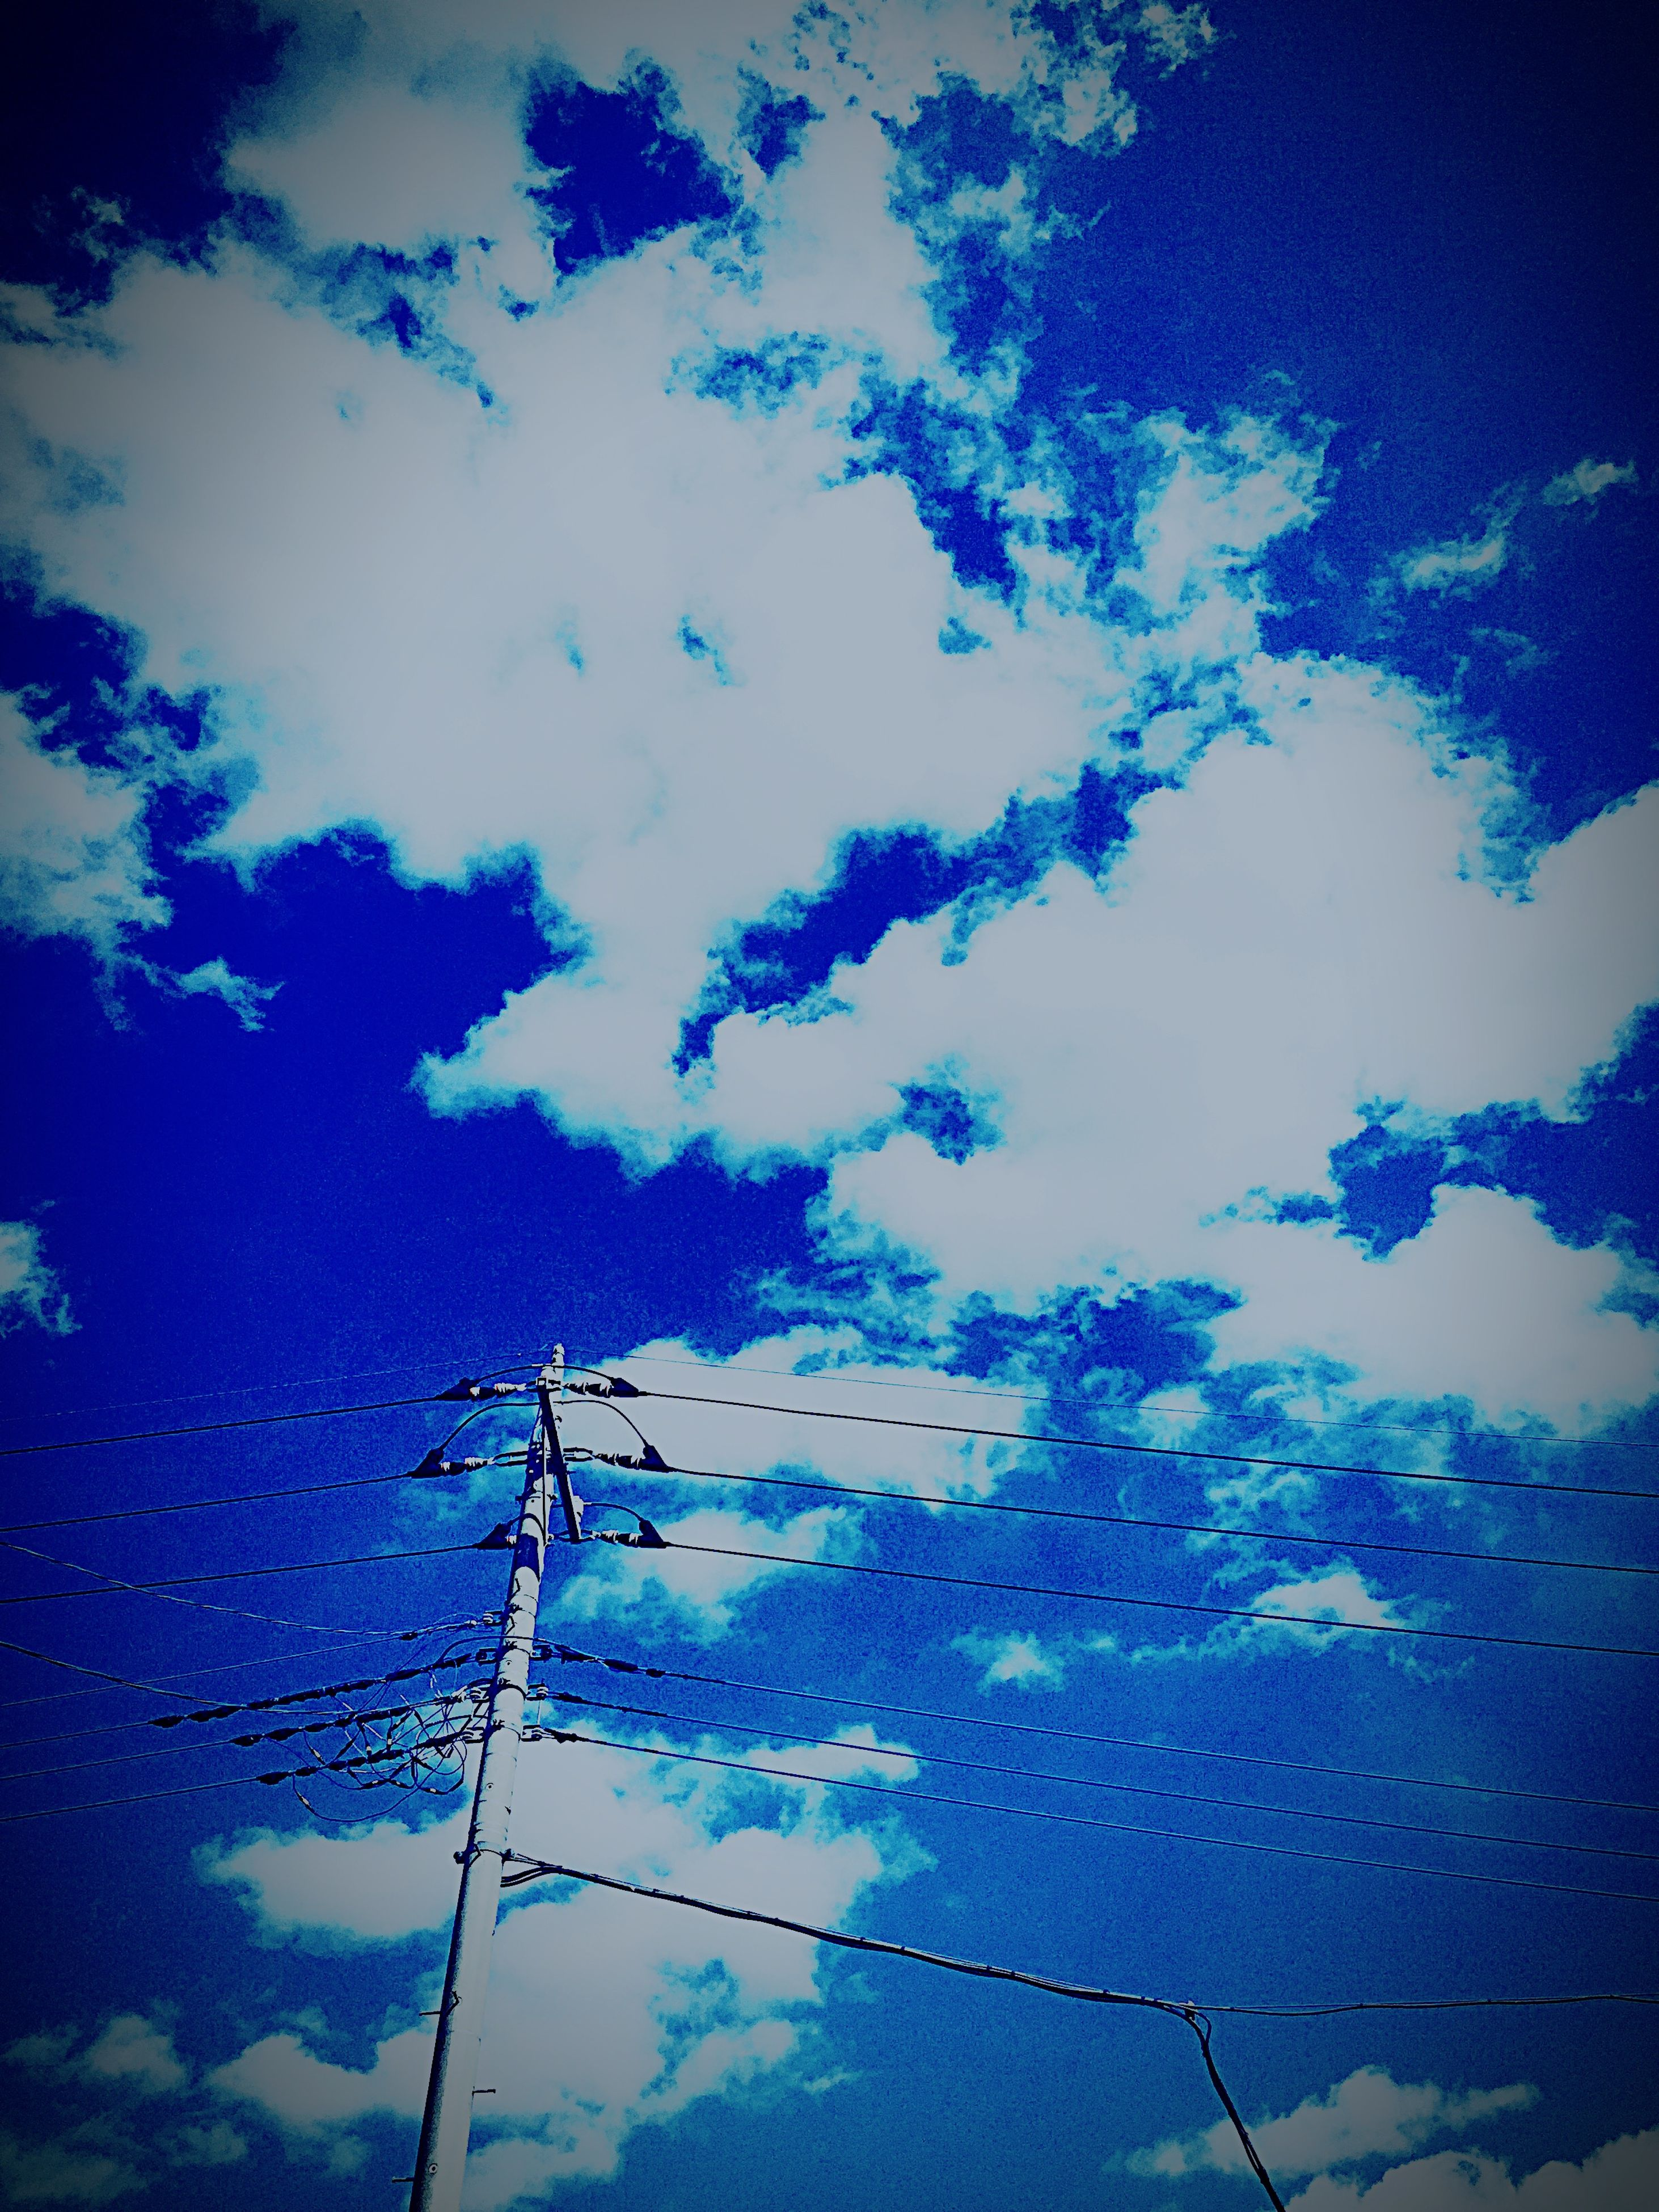 low angle view, sky, power line, blue, silhouette, electricity, electricity pylon, power supply, cloud - sky, cable, connection, technology, fuel and power generation, dusk, cloud, cloudy, nature, outdoors, lighting equipment, no people